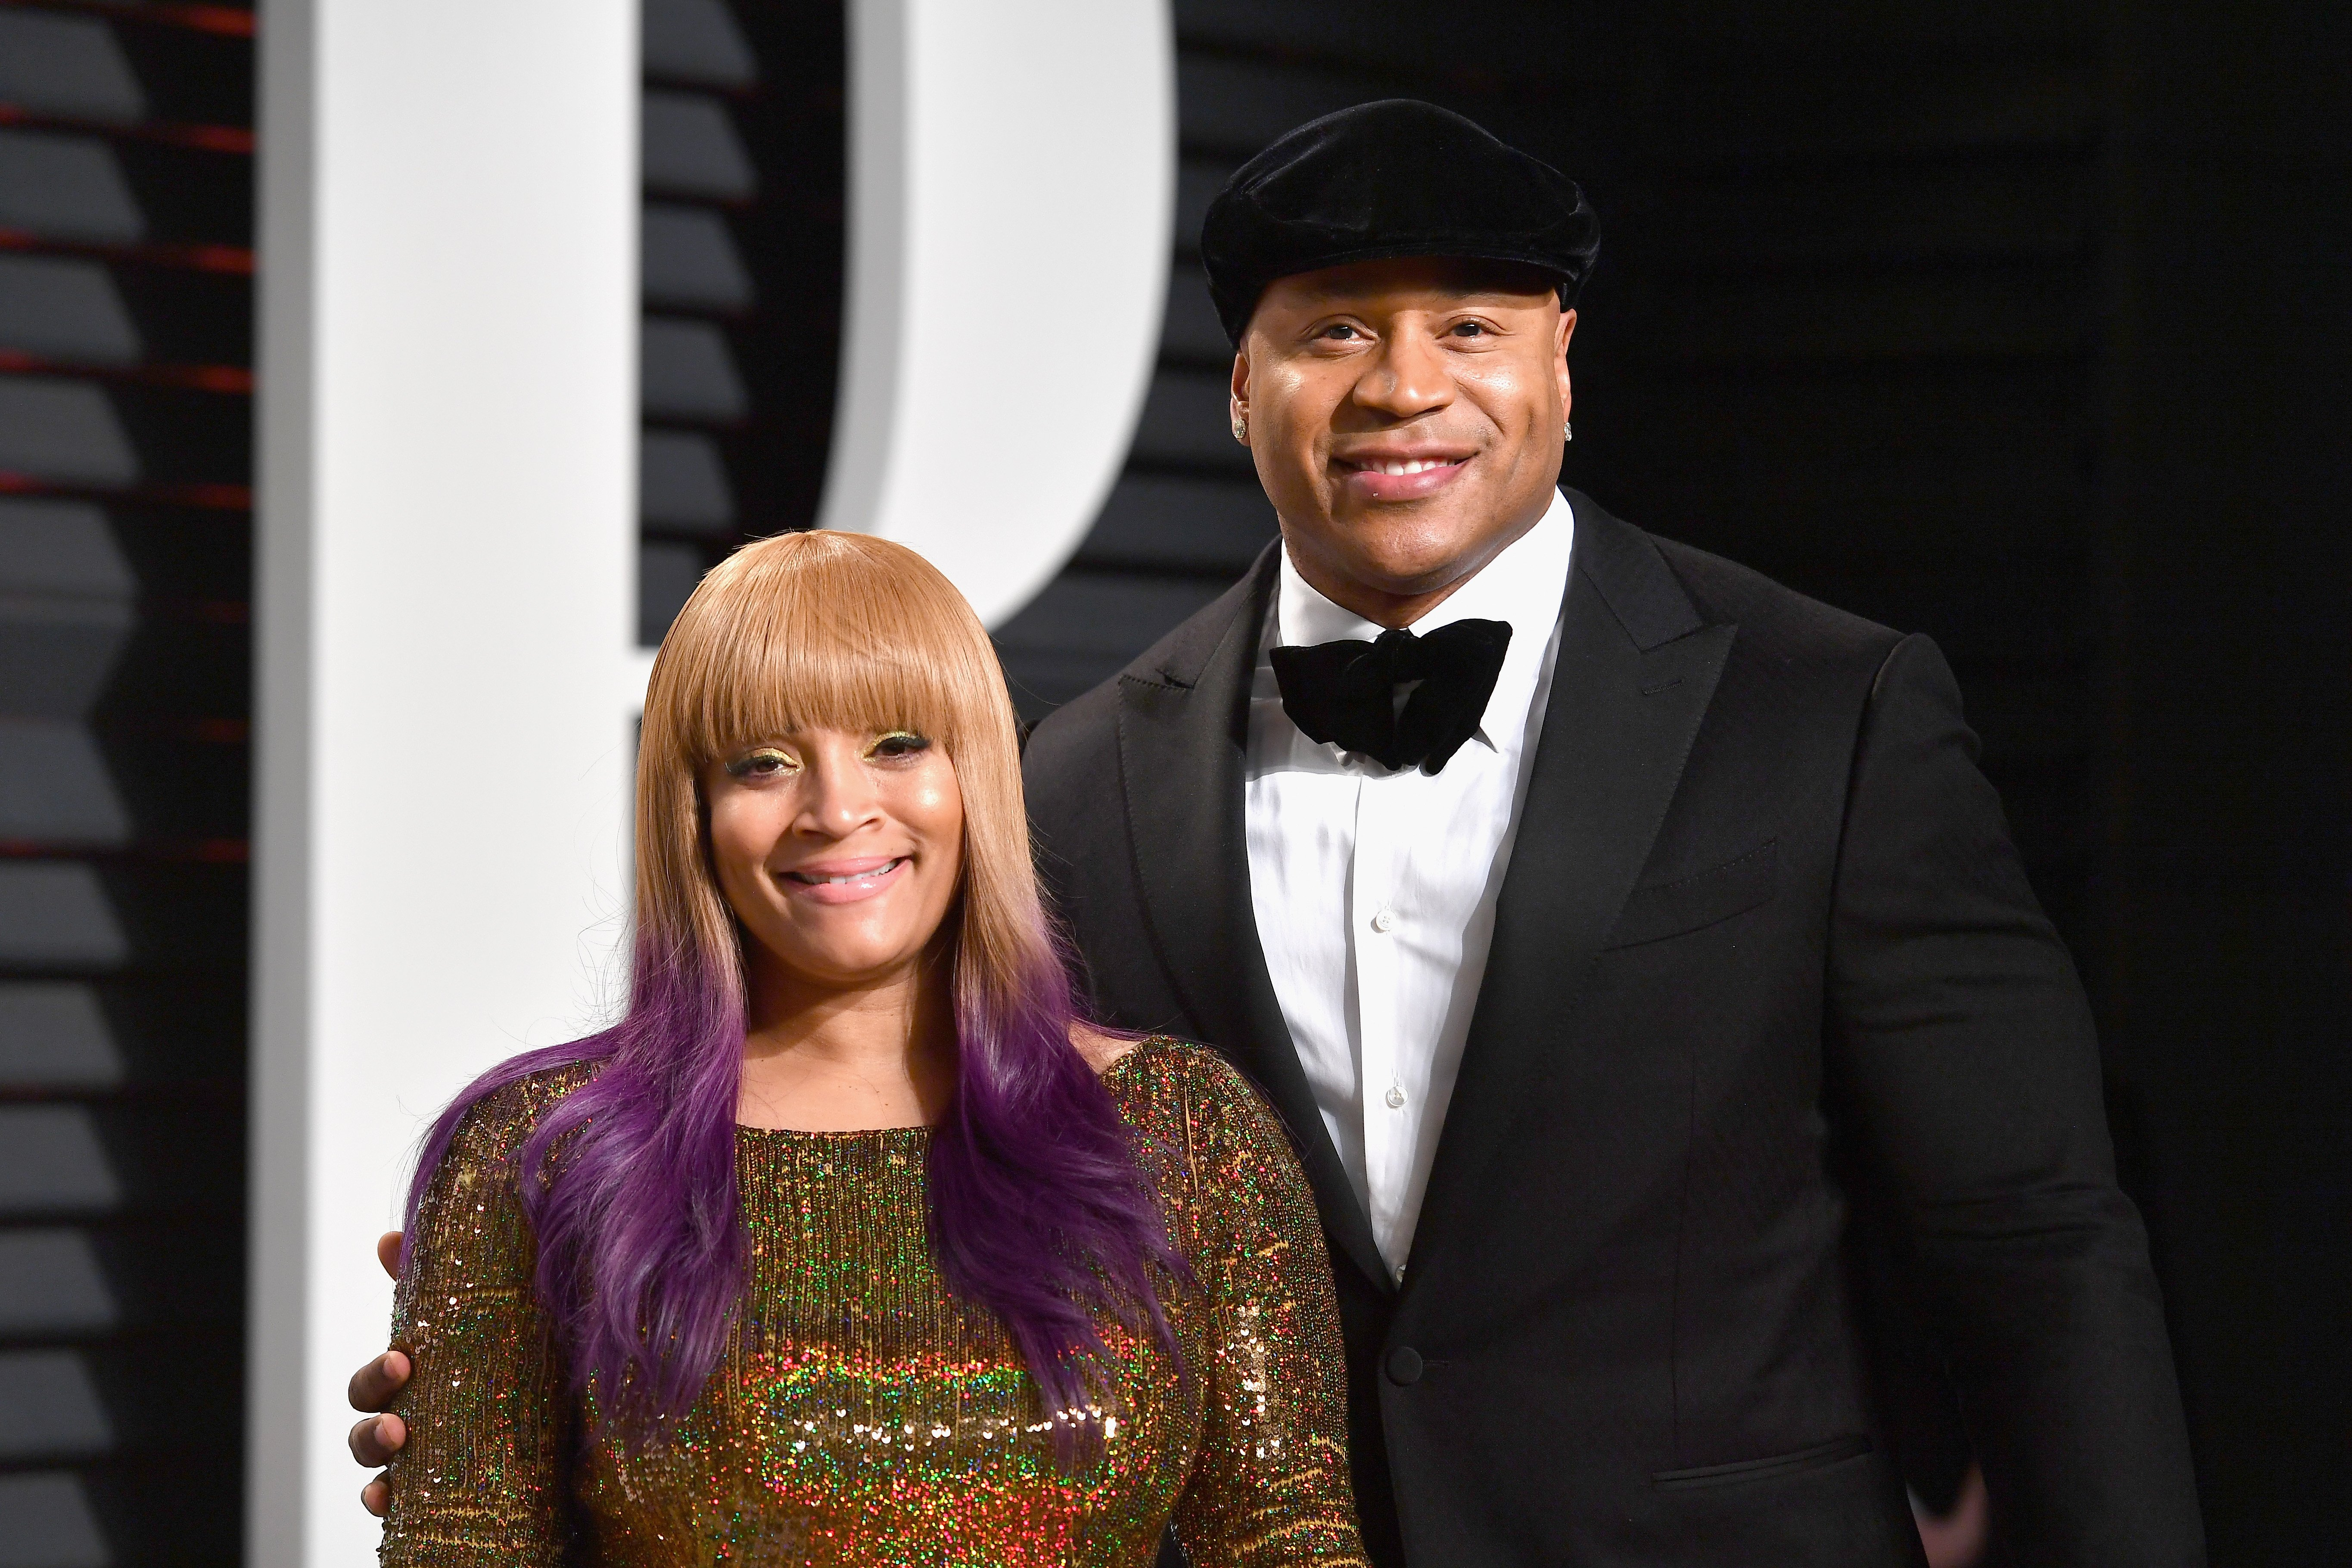 Simone Smith and LL Cool J attend the 2017 Vanity Fair Oscar Party at Wallis Annenberg Center for the Performing Arts on February 26, 2017.   Photo: Getty Images